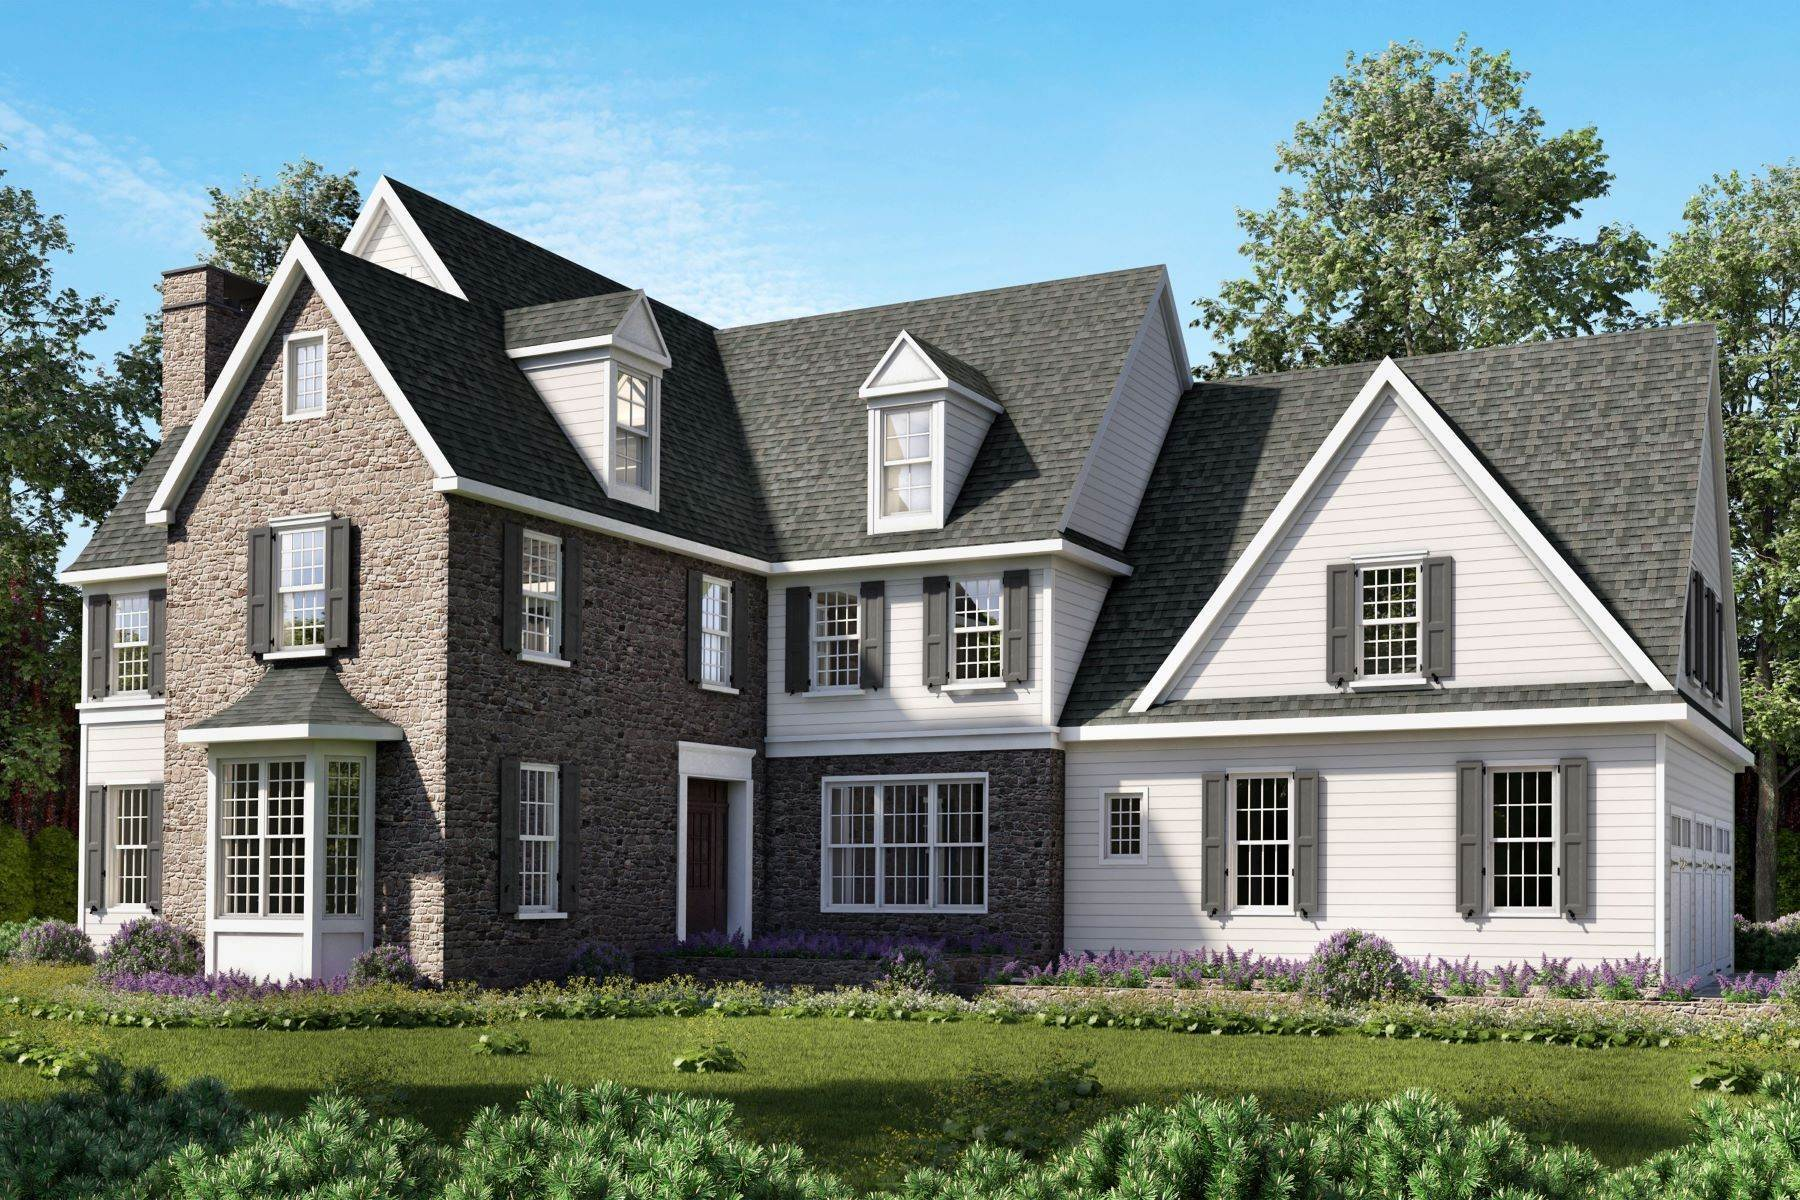 7. Single Family Homes for Sale at Pinnacle at Rolling Hills 14 SHULL FARM RD Erwinna, Pennsylvania 18920 United States